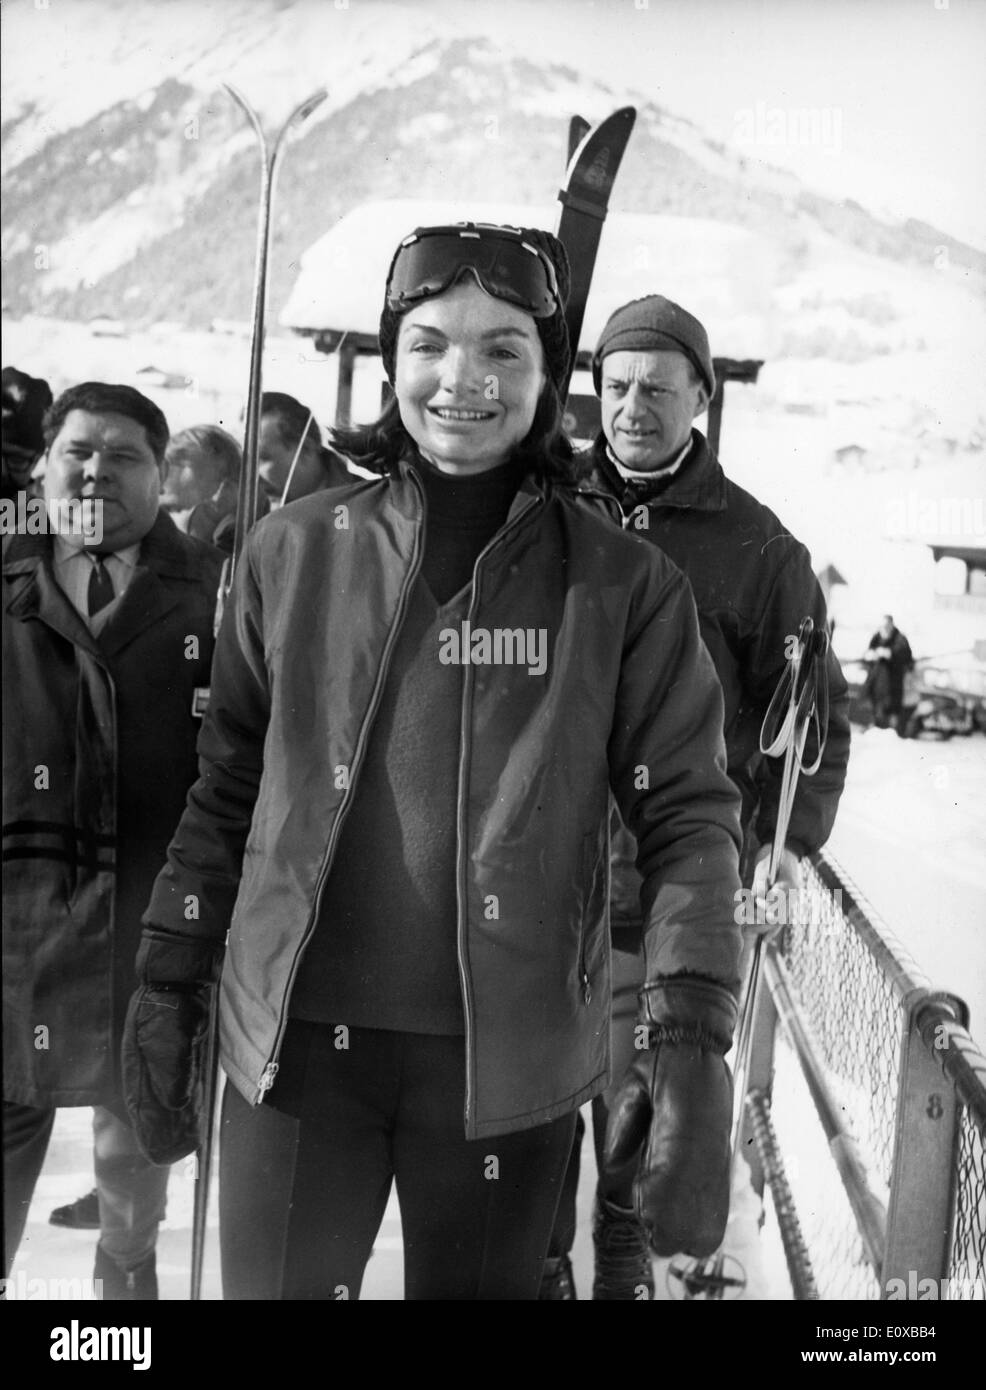 First Lady Jacqueline Kennedy on a ski trip in Switzerland - Stock Image